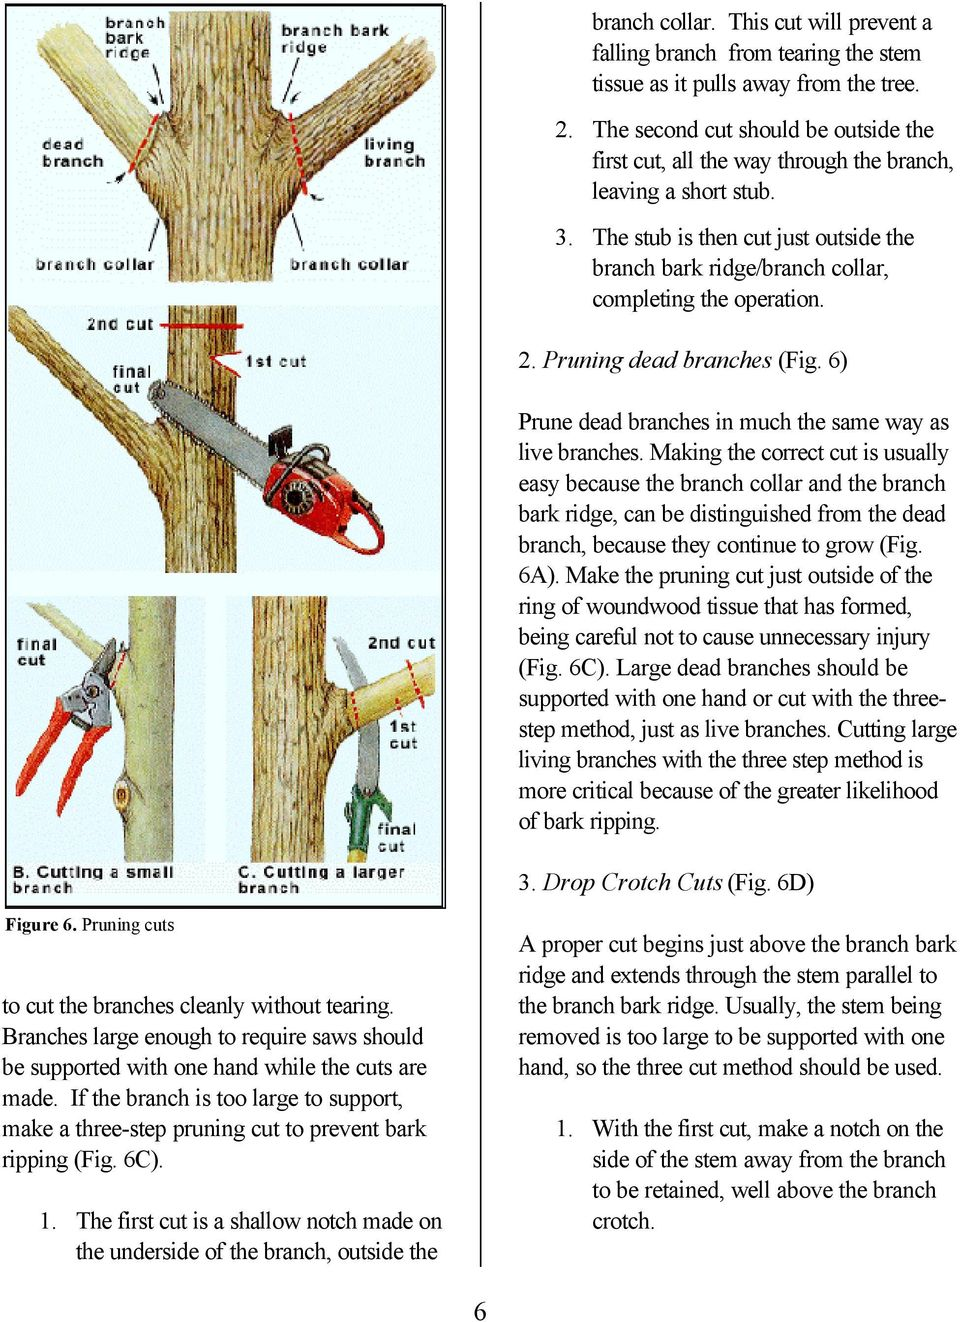 The stub is then cut just outside the branch bark ridge/branch collar, completing the operation. 2. Pruning dead branches (Fig. 6) Prune dead branches in much the same way as live branches.